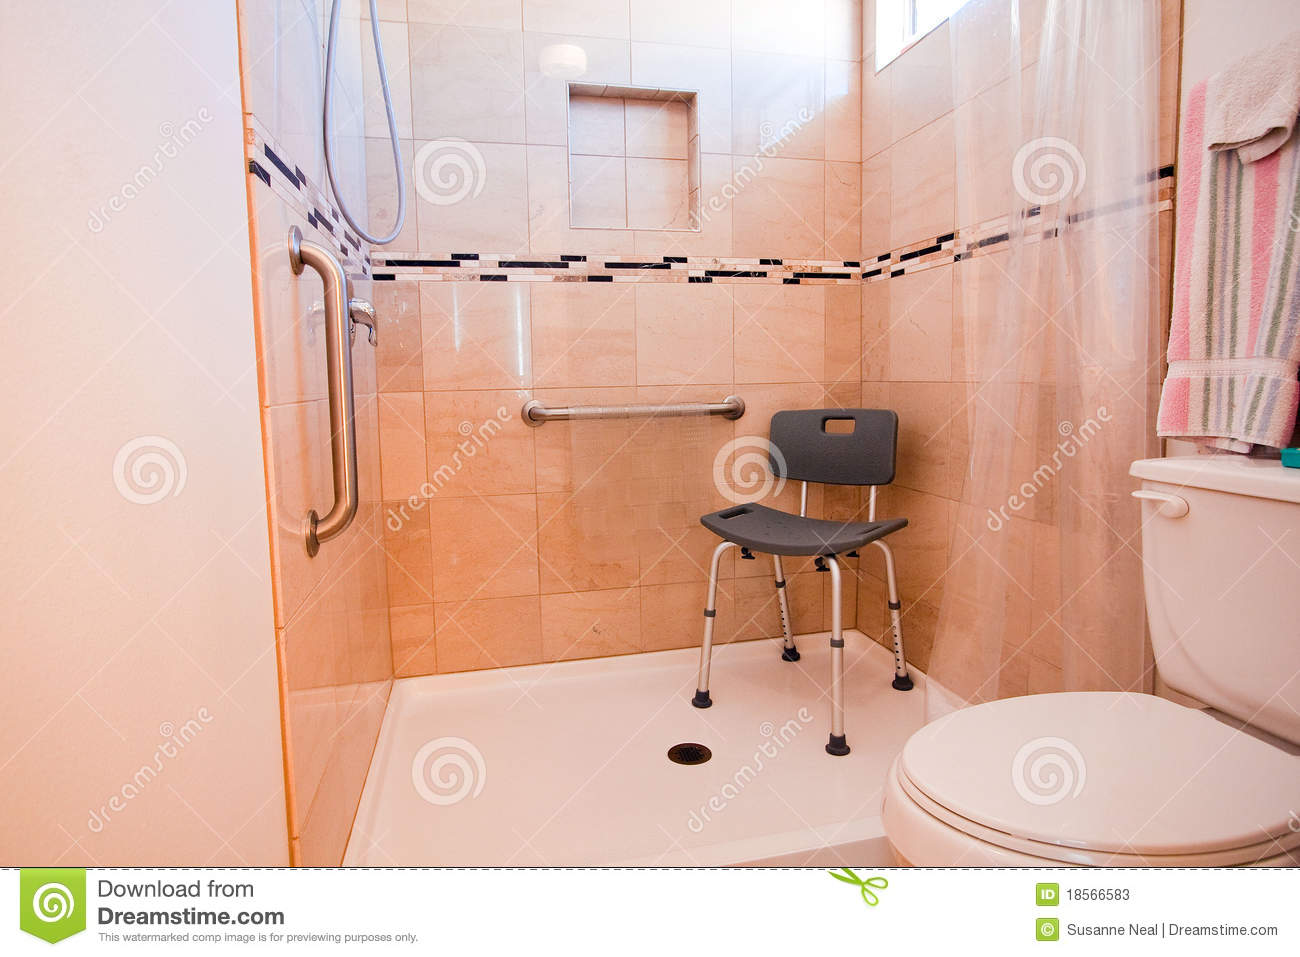 Handicap Shower Chairs Handicapped Shower Stall Stock Image Image Of Tiles